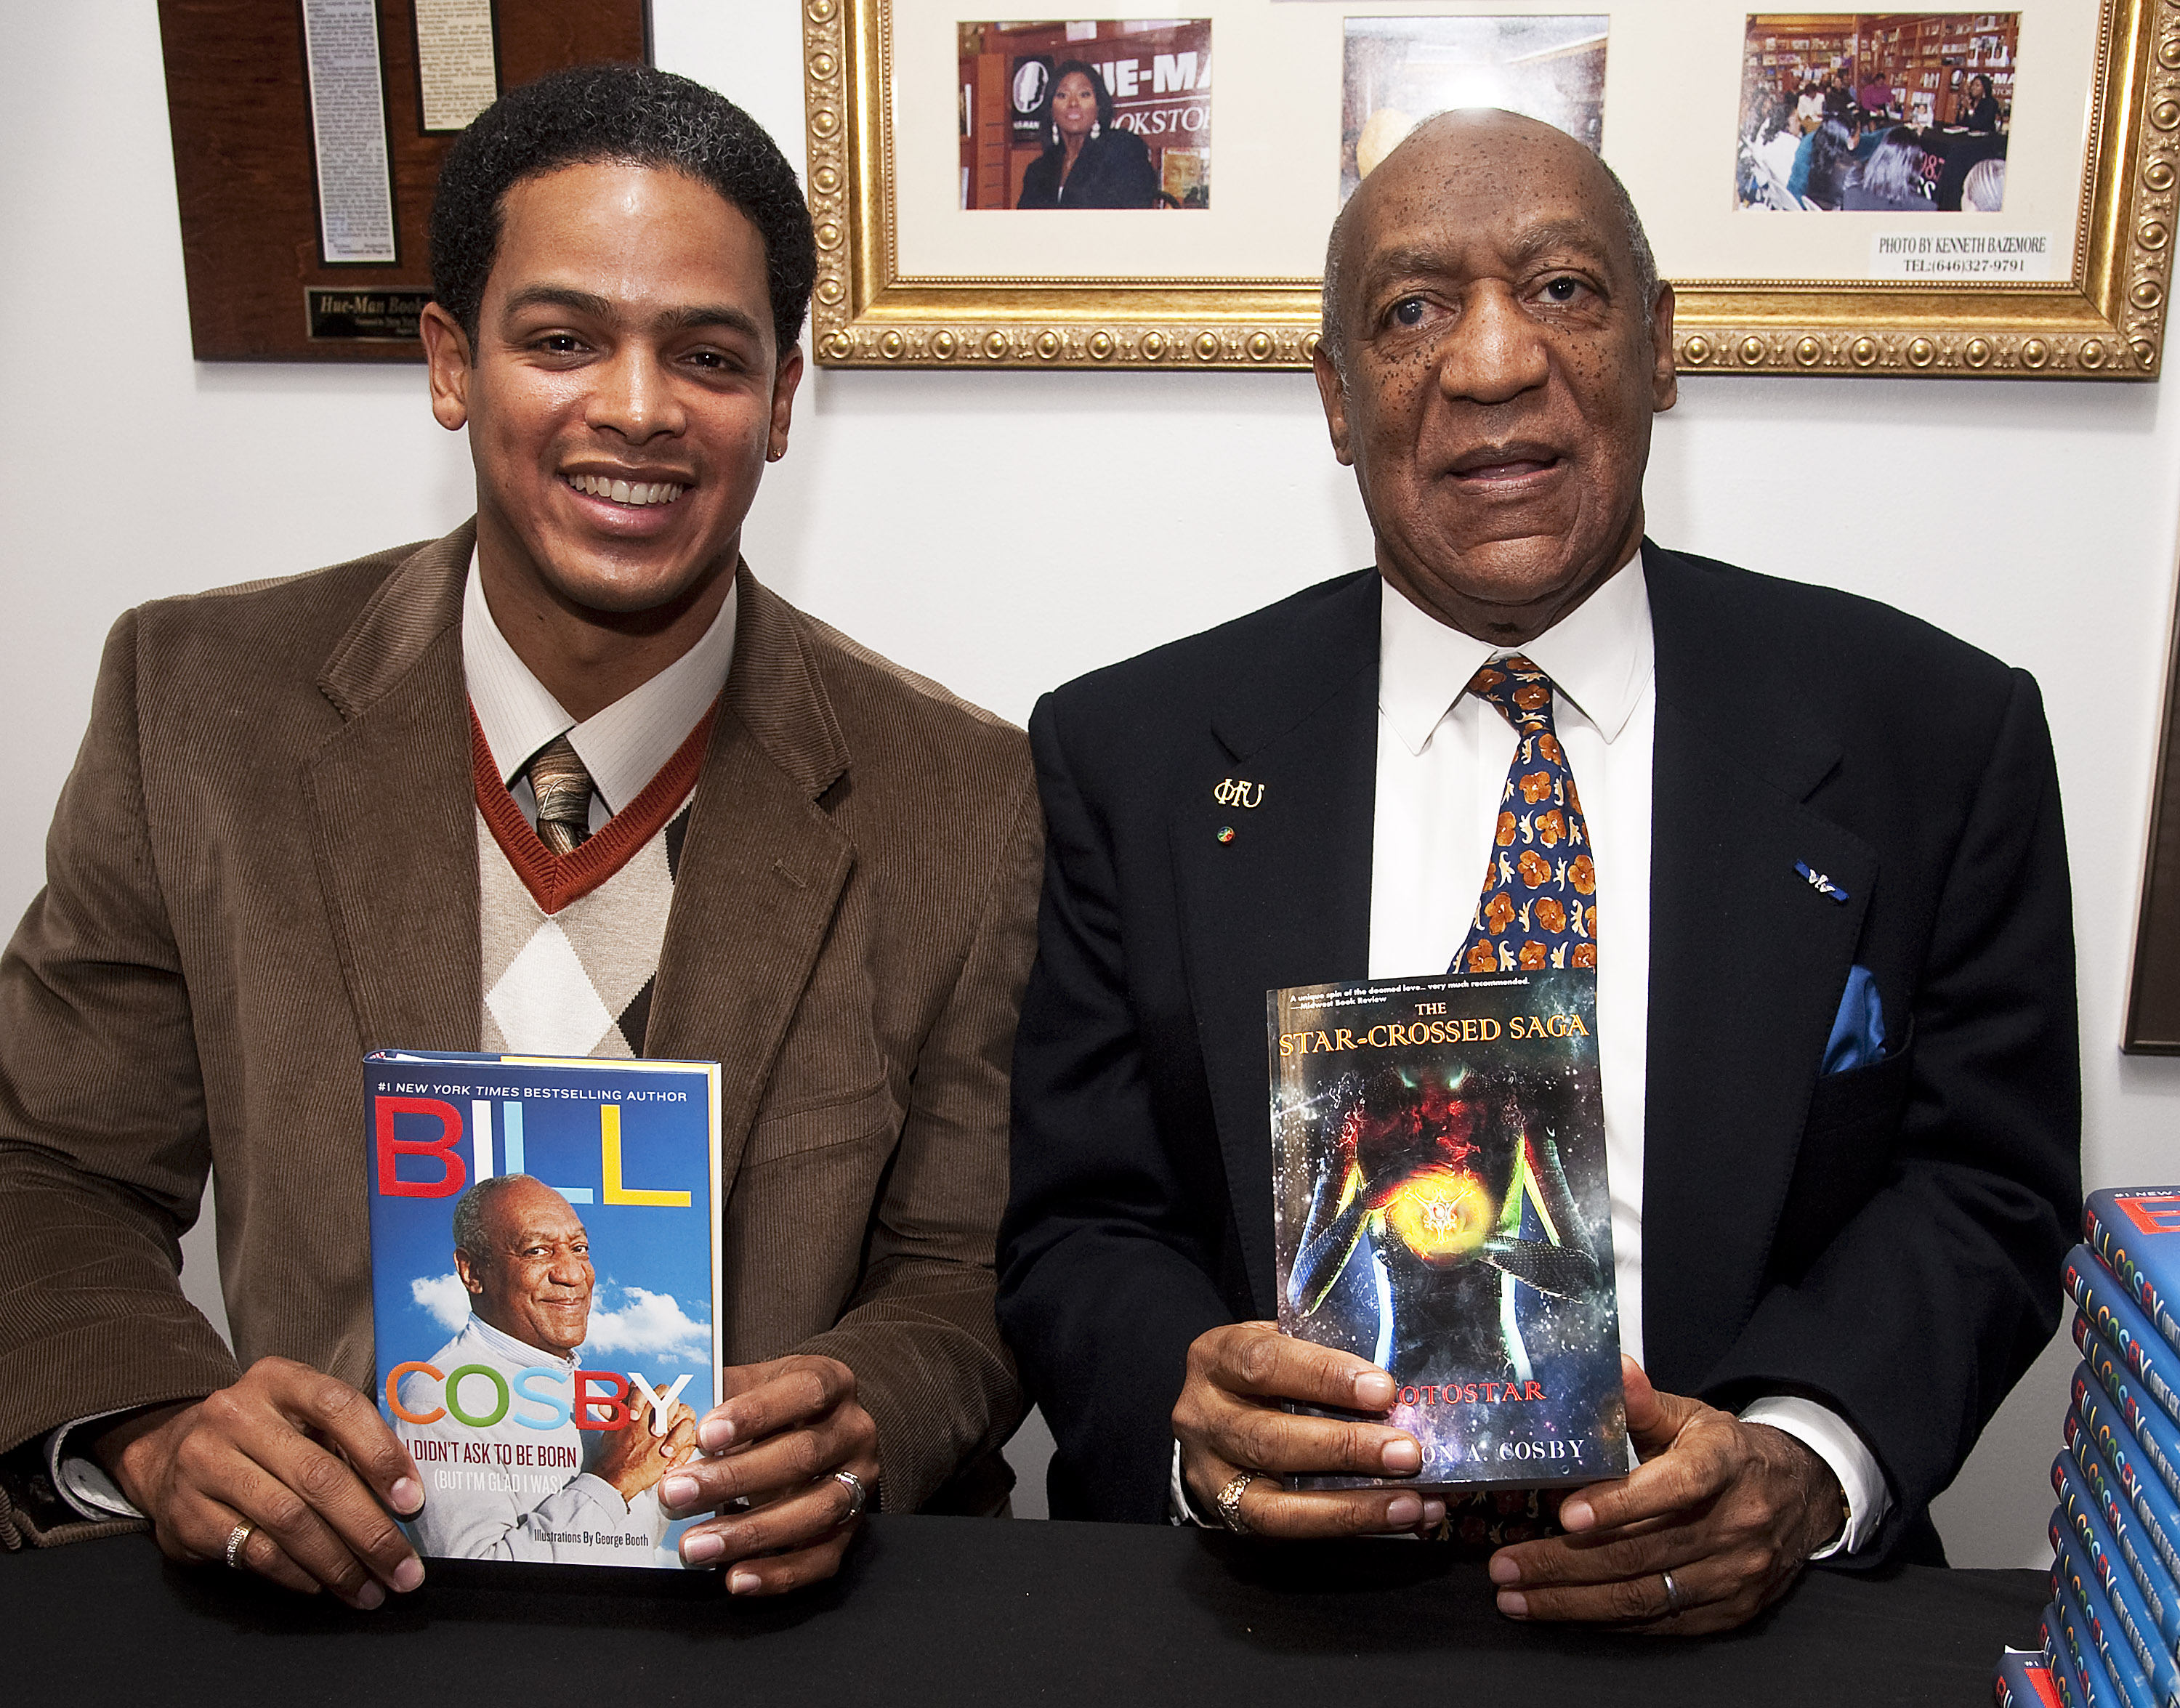 Braxton Cosby promotes his book The Star-Crossed Saga Prostar while his uncle Bill Cosby promotes I Didn't Ask to Be Born (but I'm Glad I Was) in New York City on Jan. 18, 2012